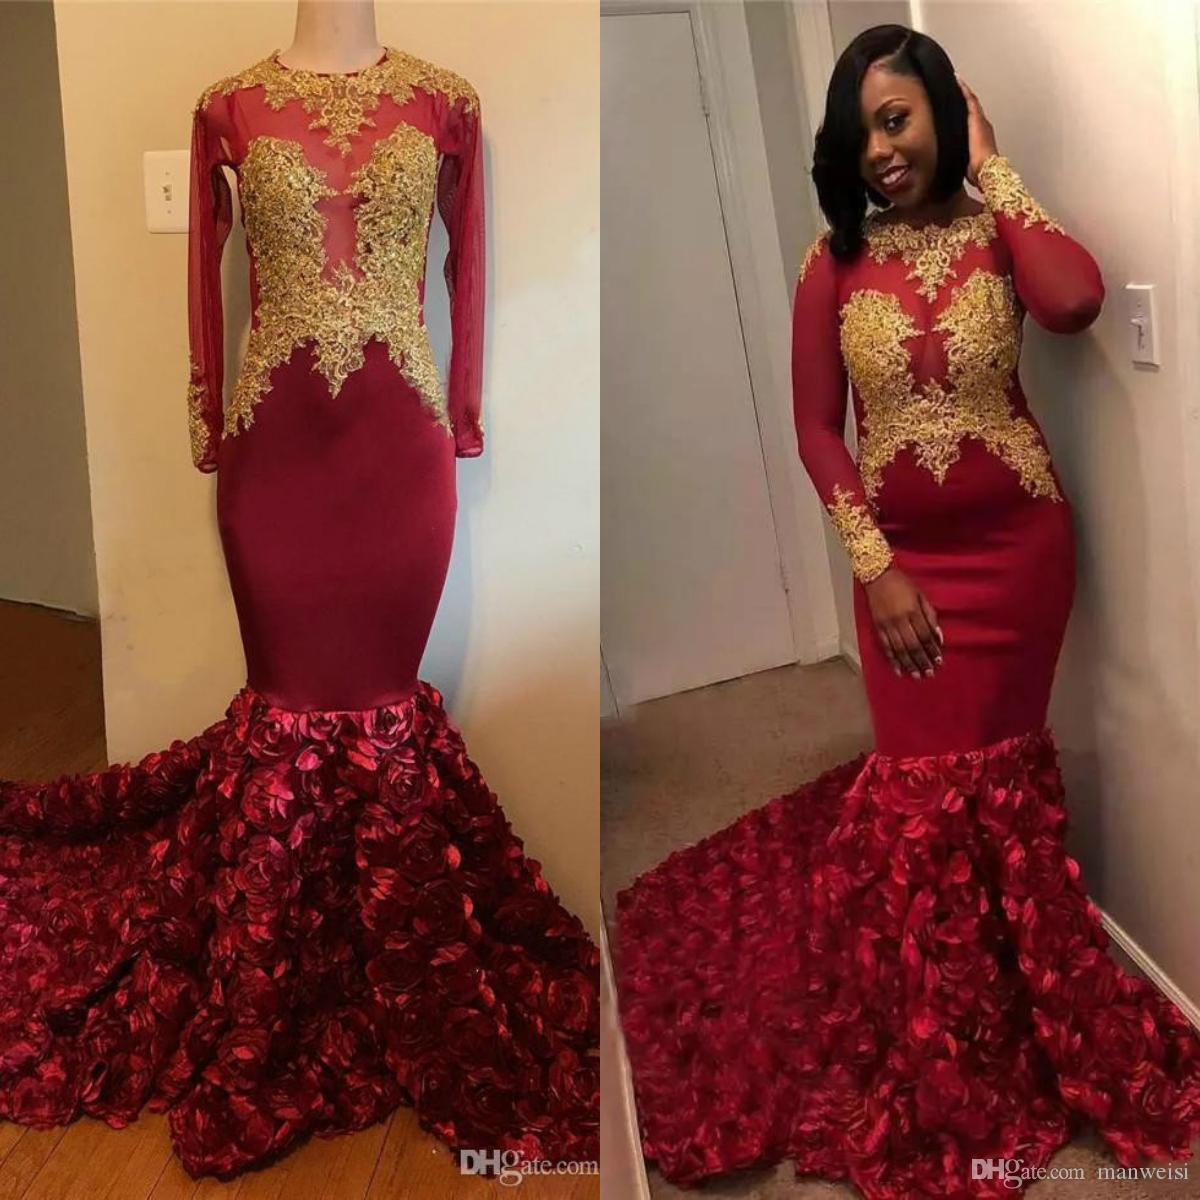 2019 Dark Red African Mermaid Prom Dresses Long Sleeve Gold Appliques Beads Flower Evening Gowns Plus Size Black Girls Pageant Party Dress